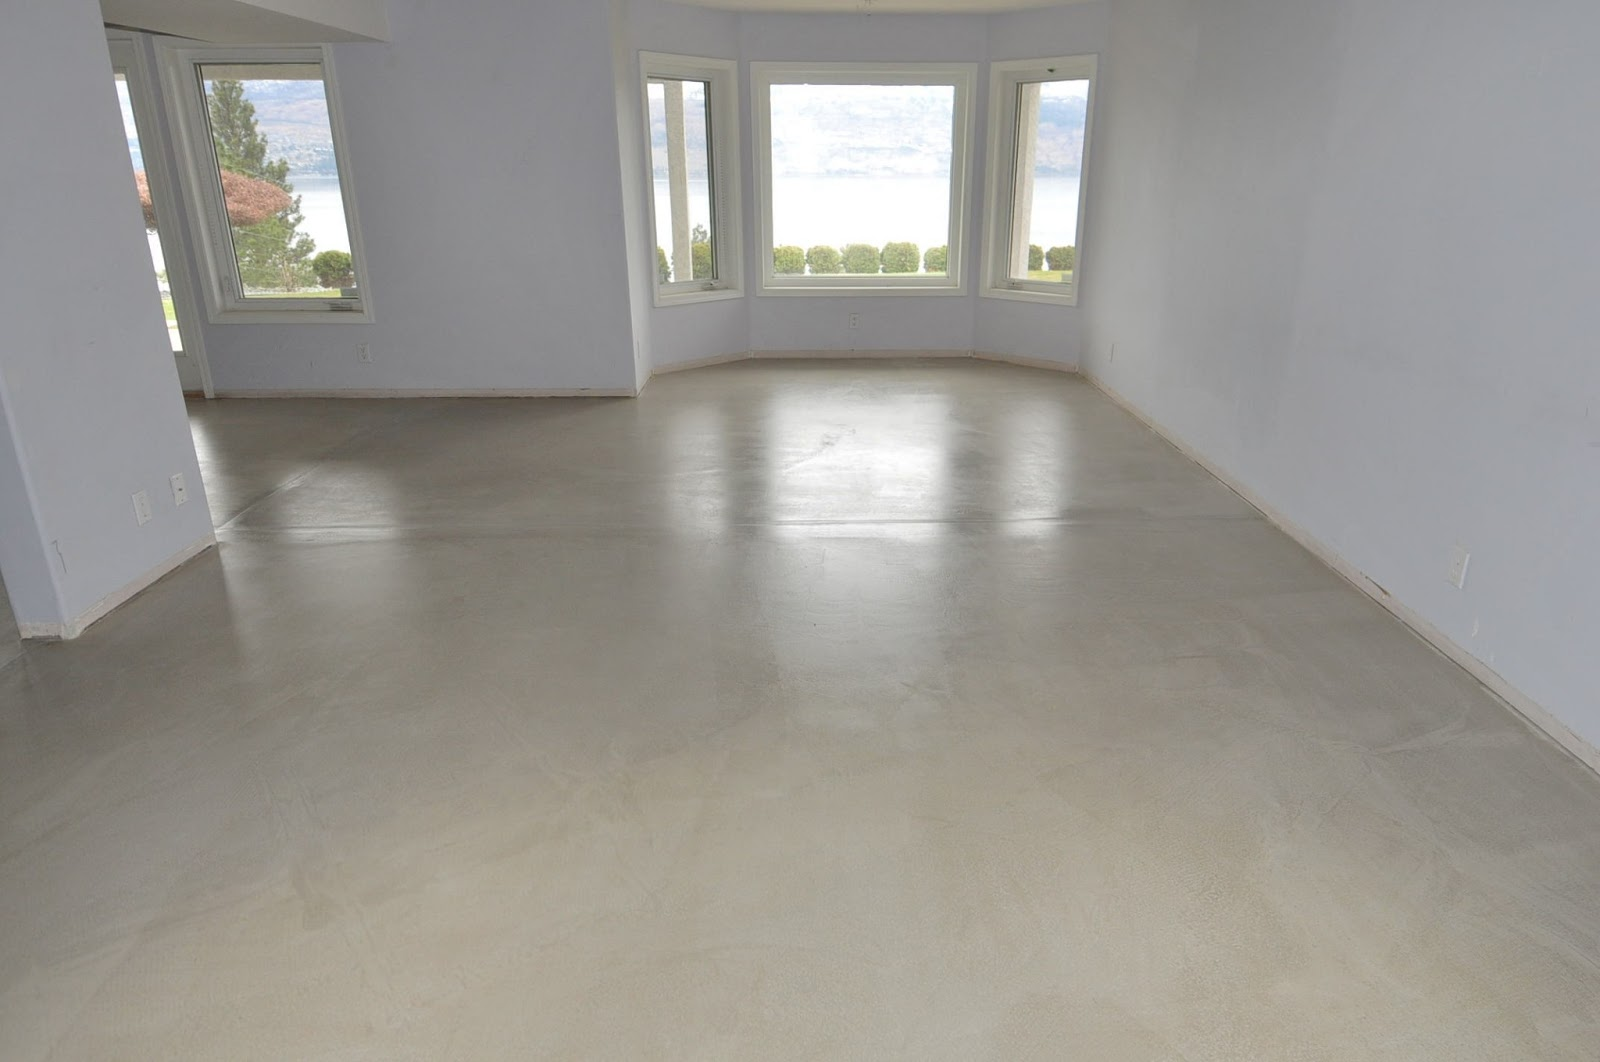 Mode concrete cool and modern concrete floors for House of floors